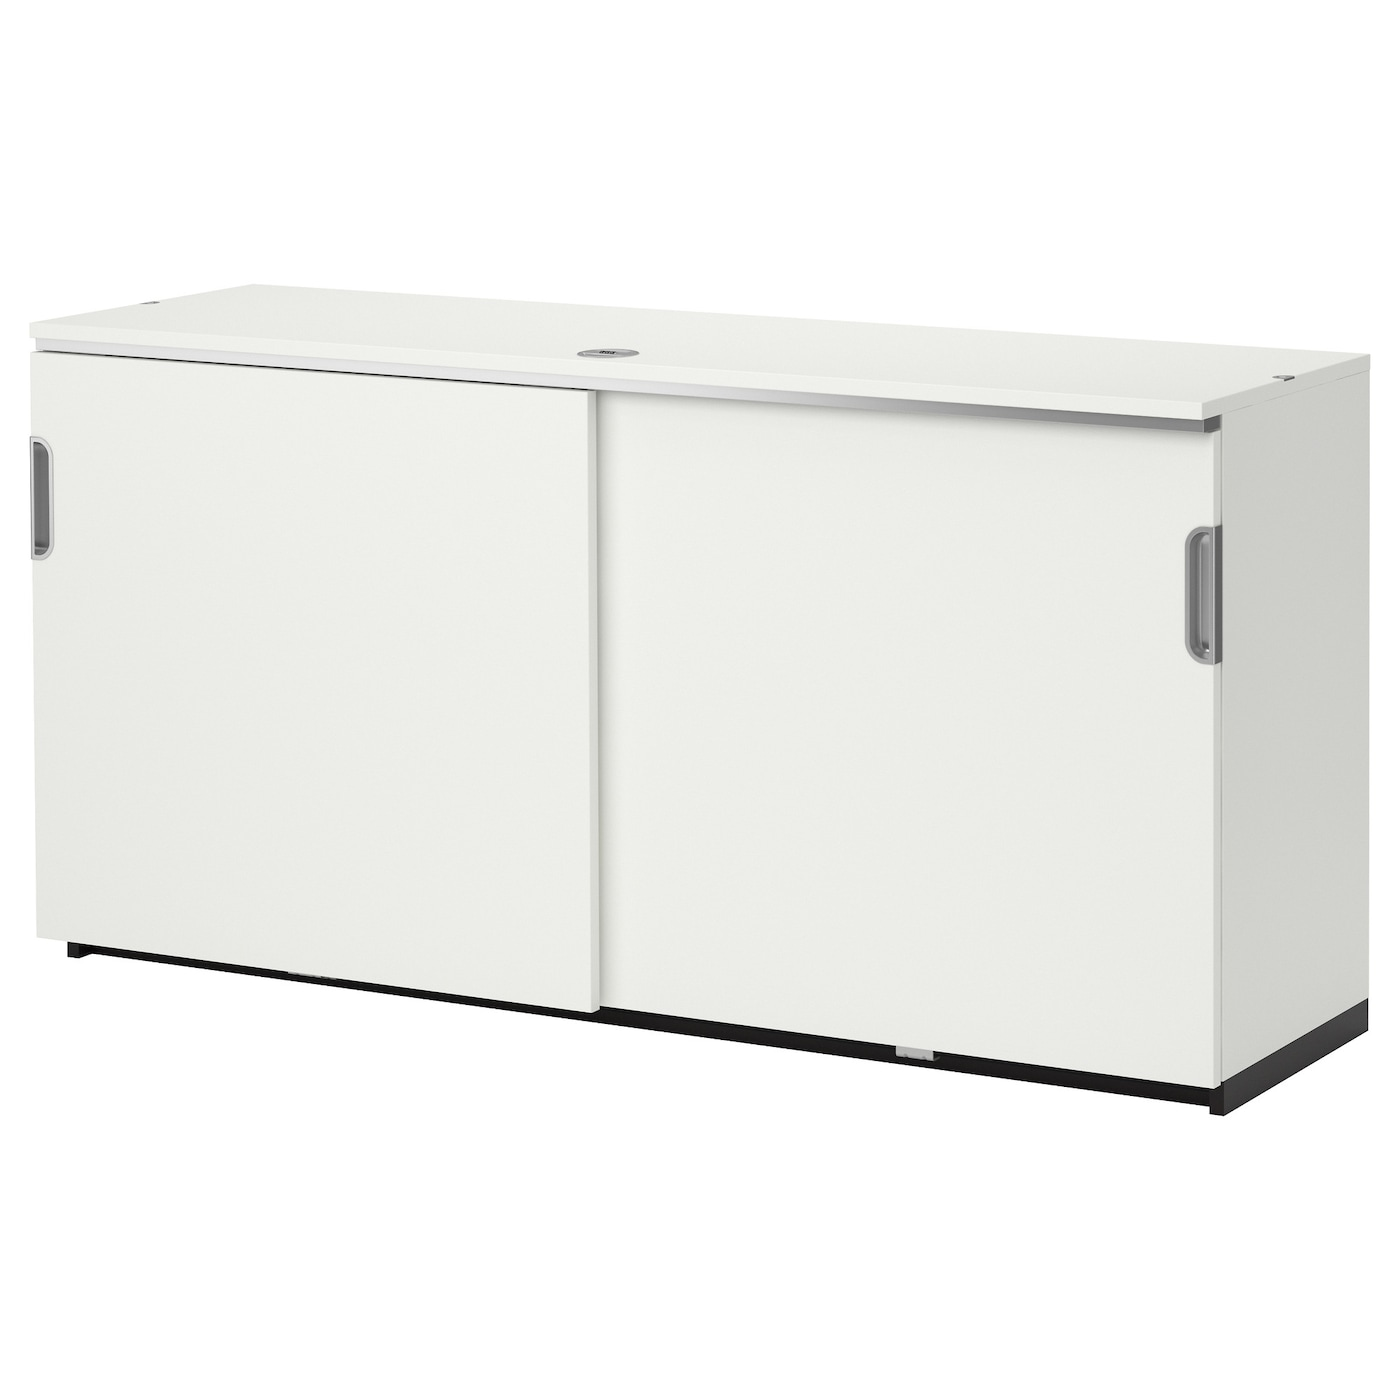 Beautiful IKEA GALANT Cabinet With Sliding Doors Integrated Damper Makes Doors Close  Silently And Gently.